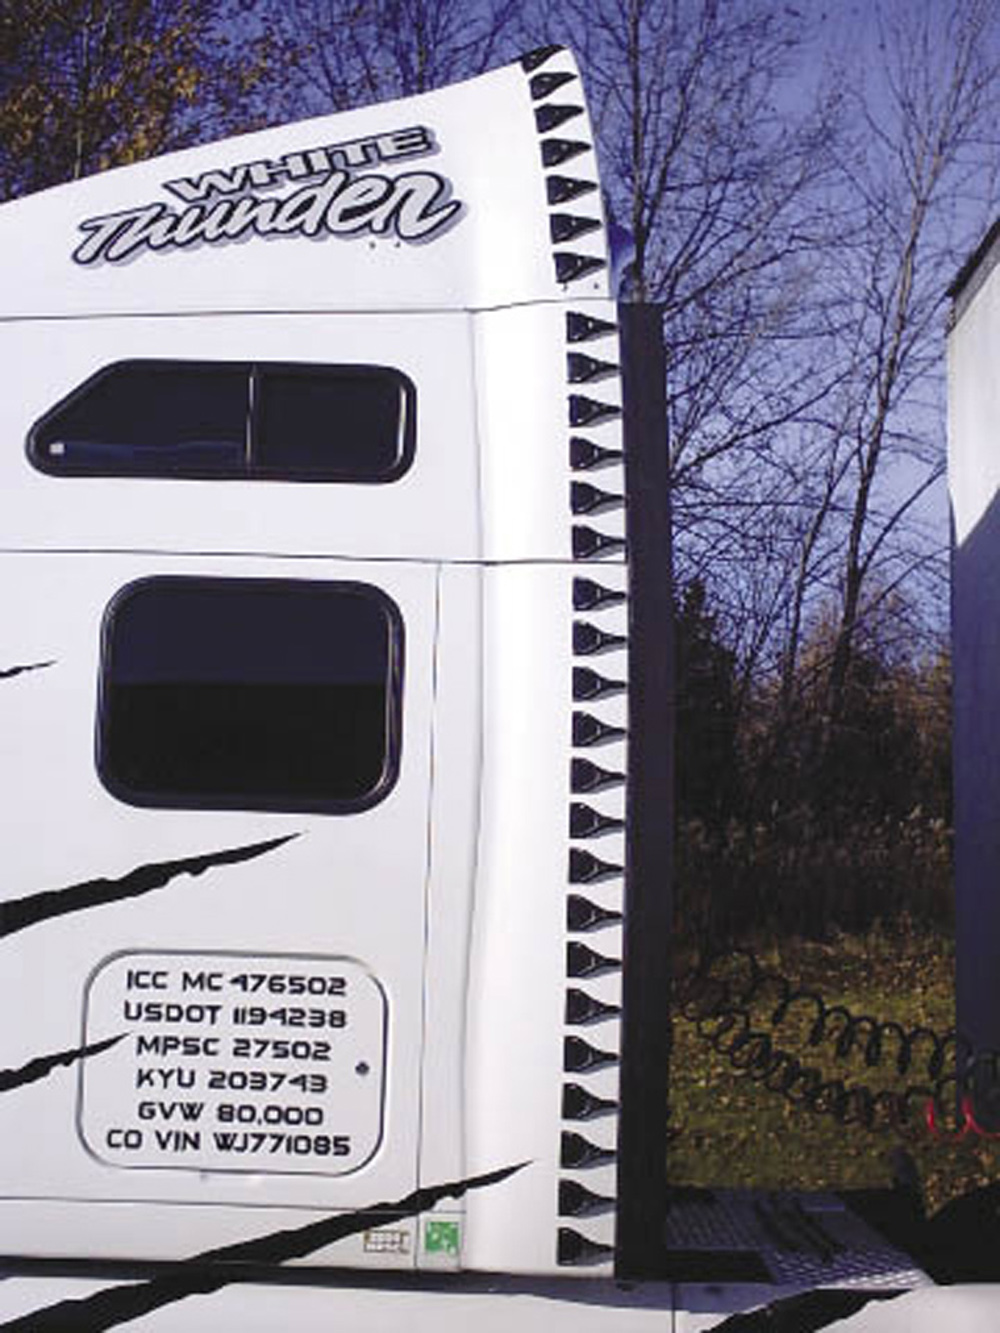 Airtabs create controlled counter rotating vortices to bridge the gap between tractor and trailer or control airflow past the rear of the vehicle